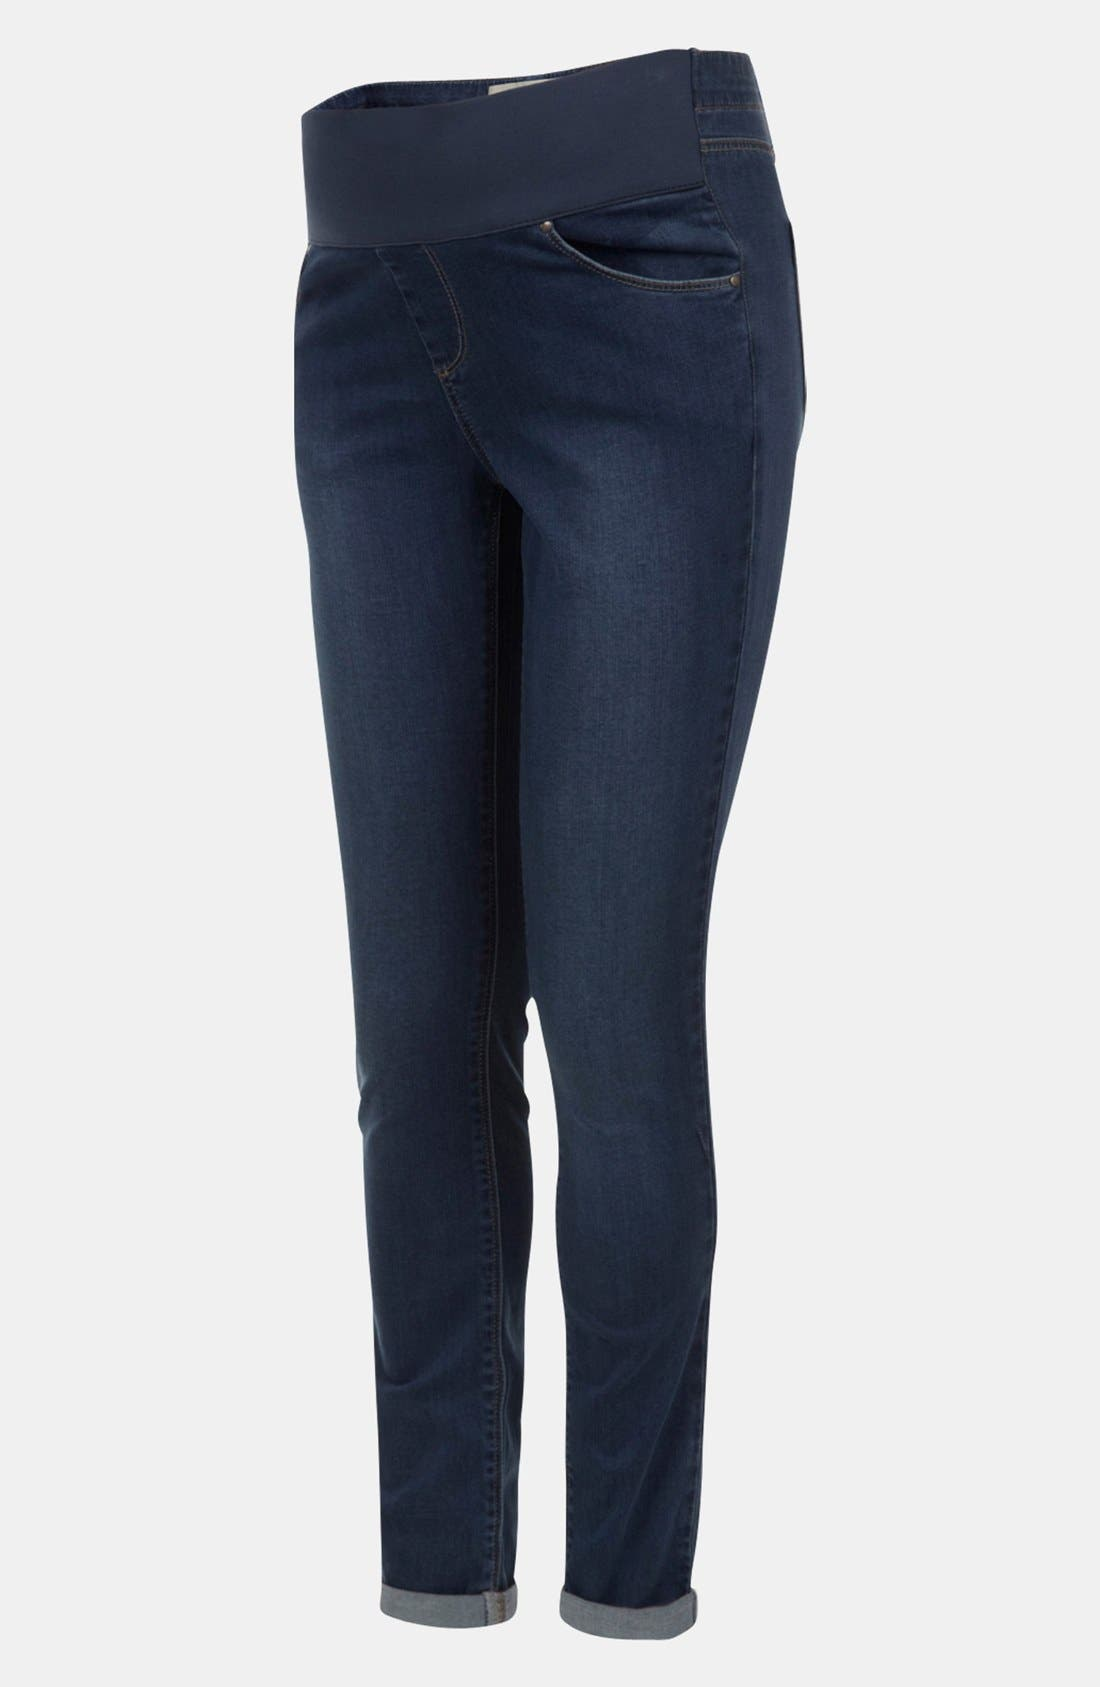 Alternate Image 1 Selected - Topshop 'Leigh' Maternity Skinny Jeans (Short)